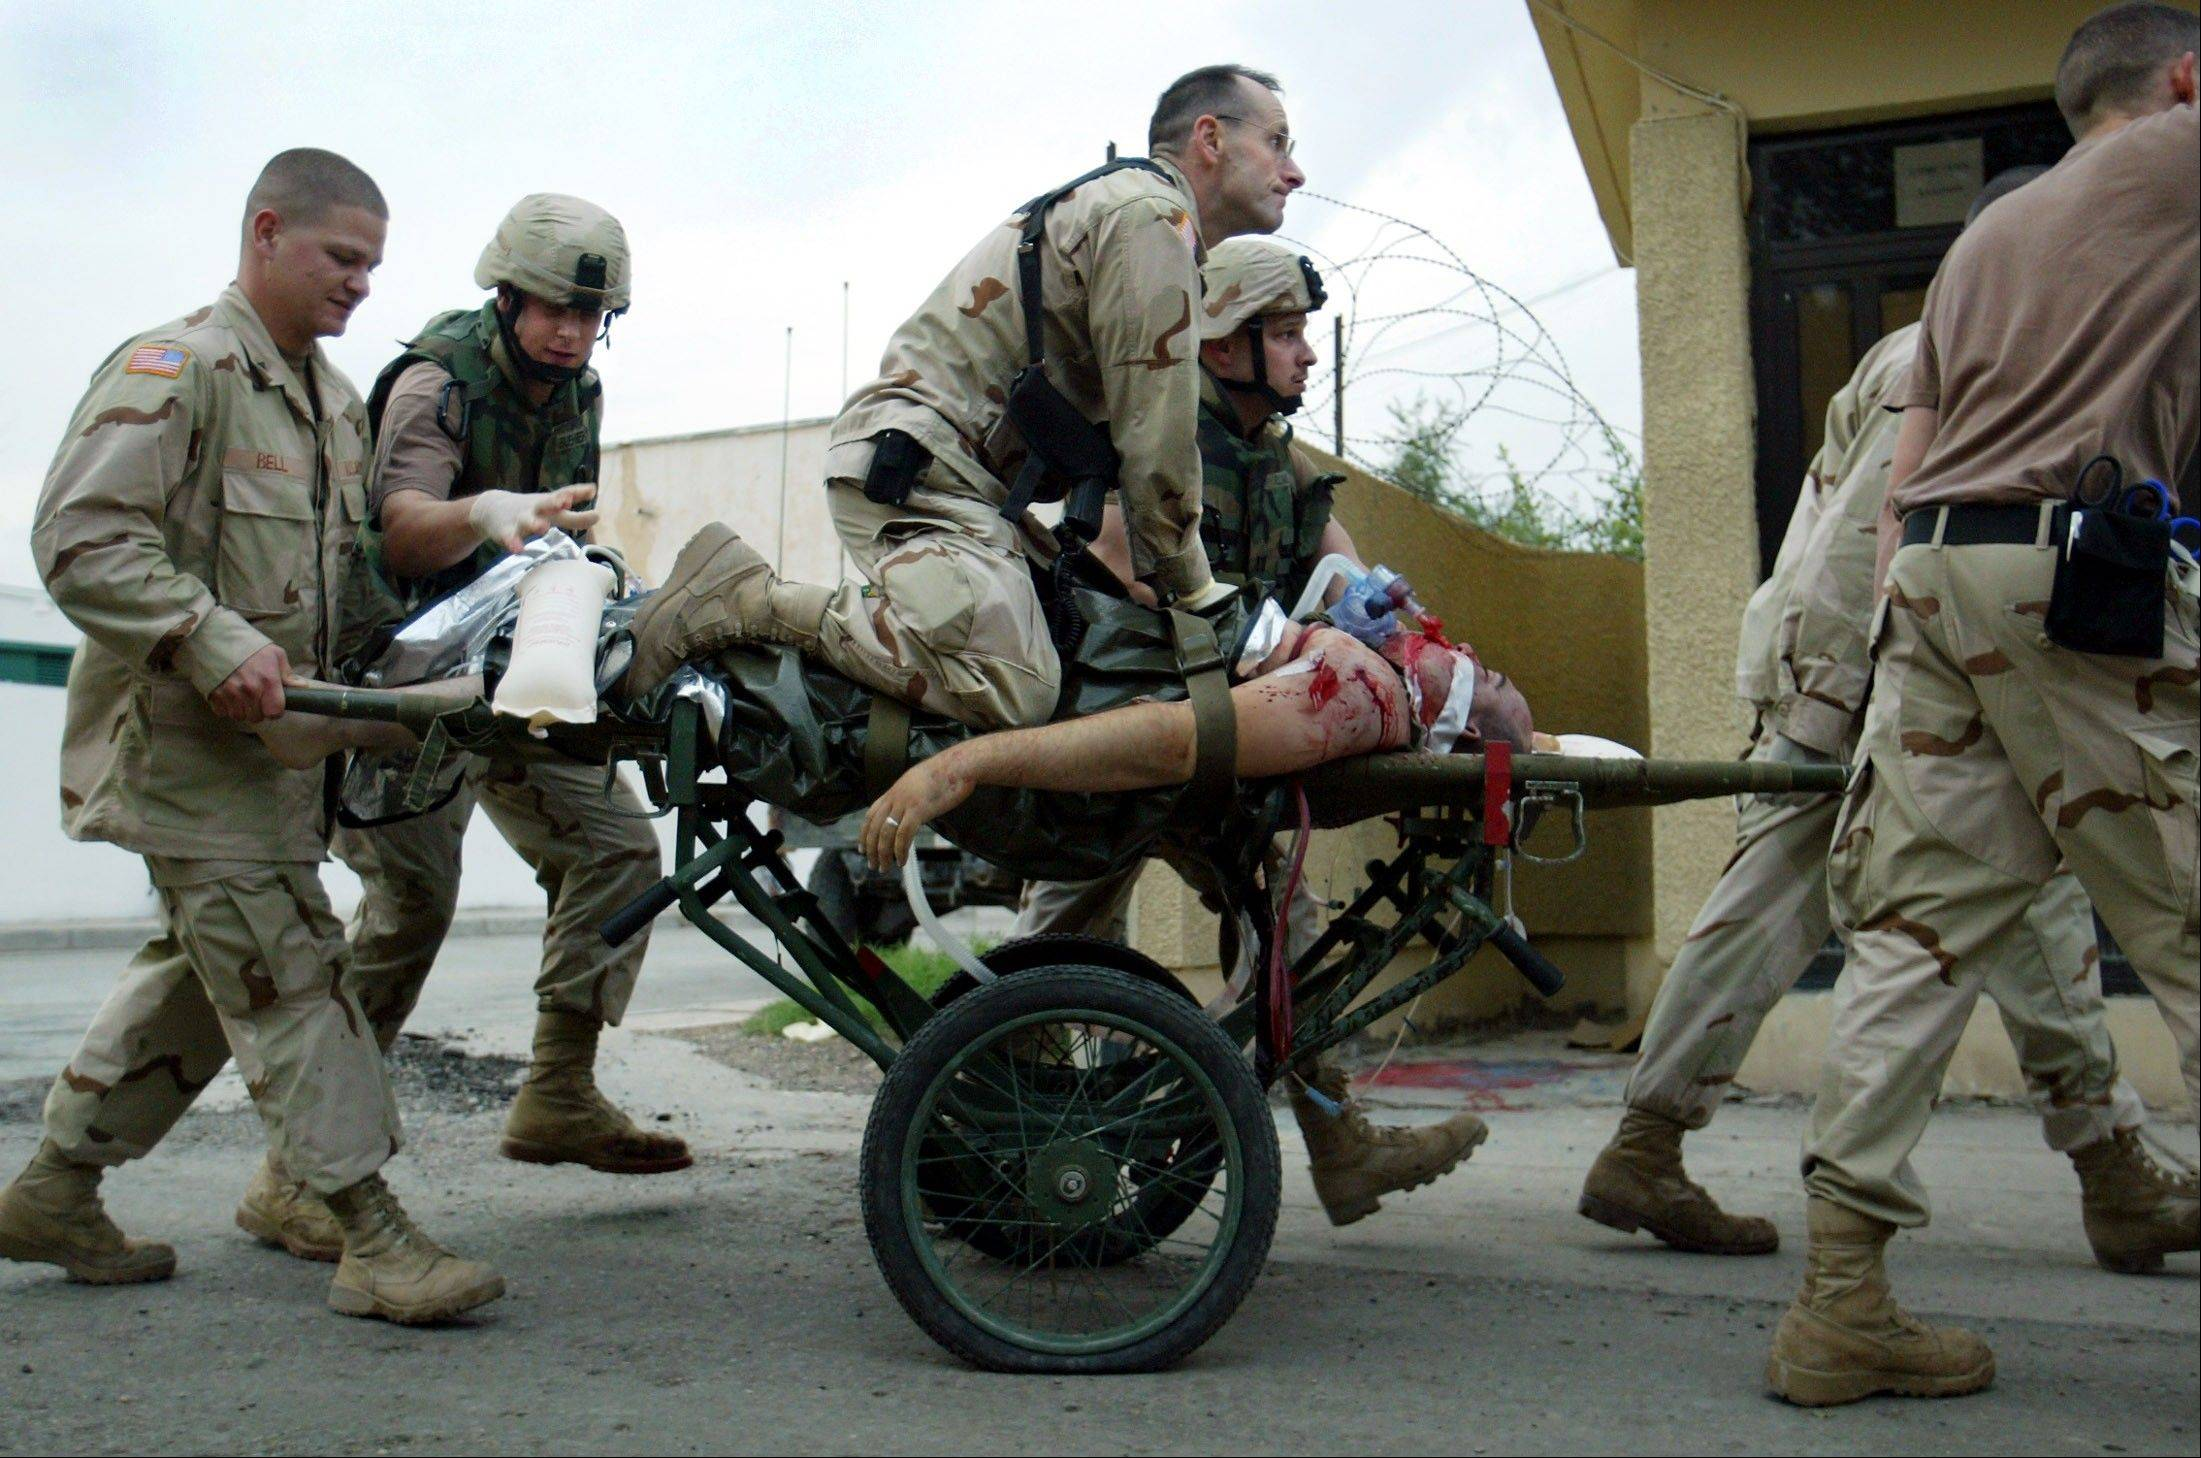 FILE - U.S. Army Nurse supervisor Patrick McAndrew tries to save the life of an American soldier by giving him CPR on a stretcher as he arrived at a military hospital in Baghdad, Iraq on Tuesday, Nov. 9, 2004. The soldier was fatally wounded in a Baghdad firefight with insurgents.